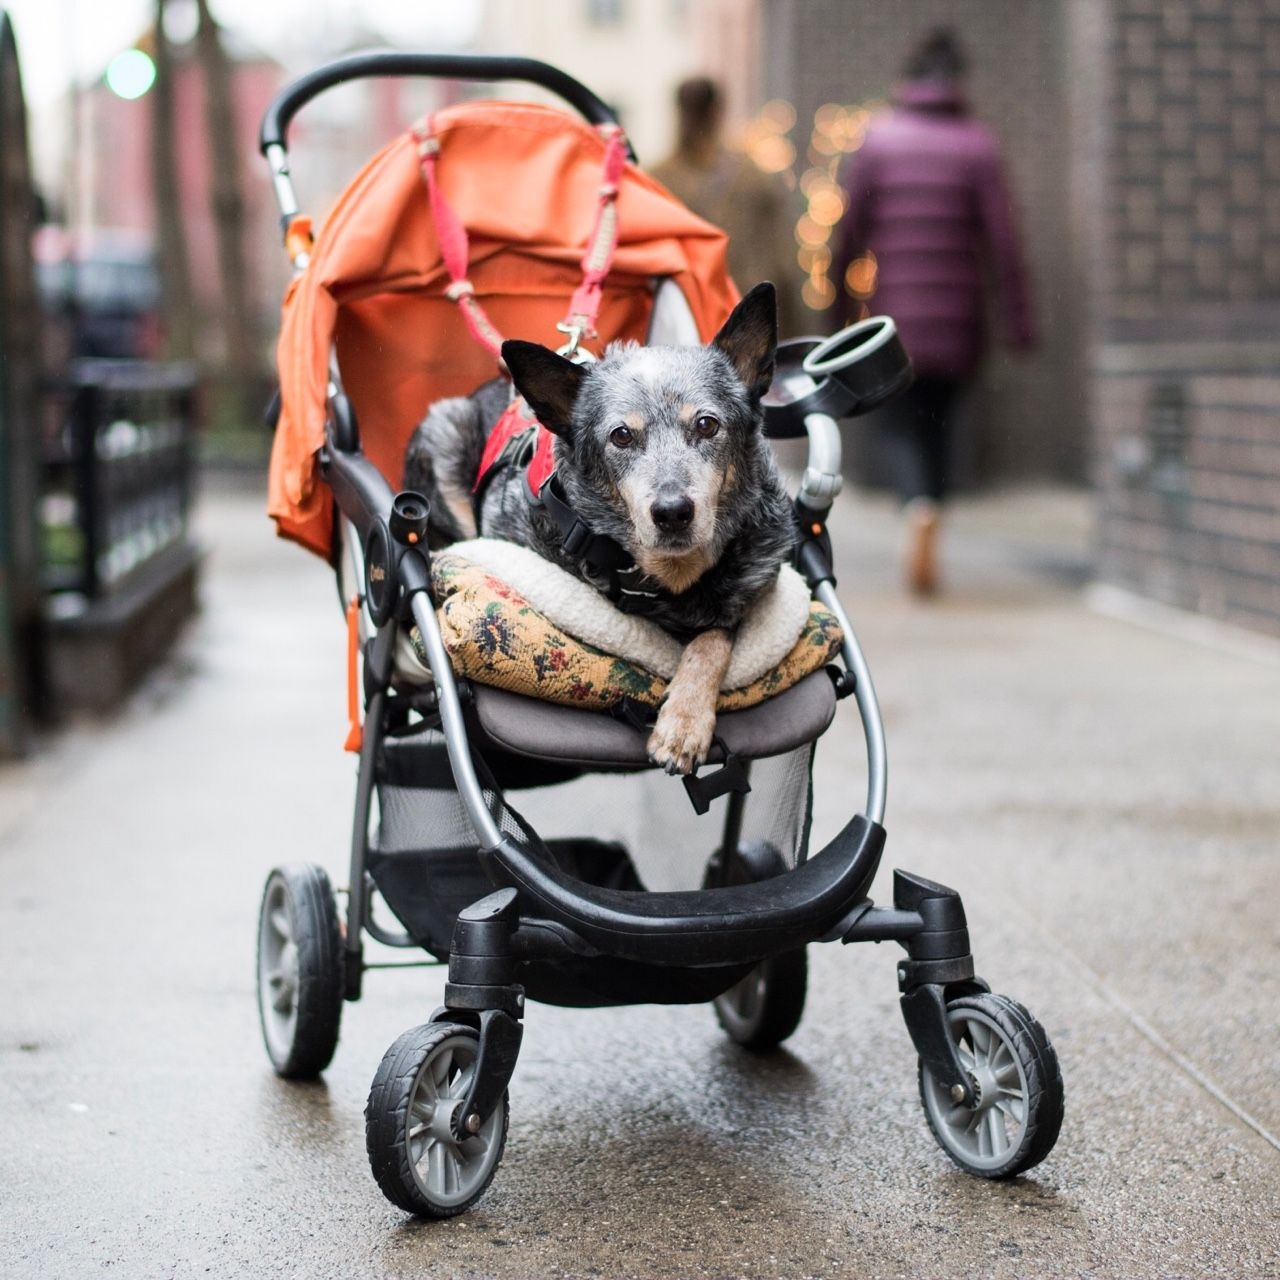 About Dog stroller, Pet stroller